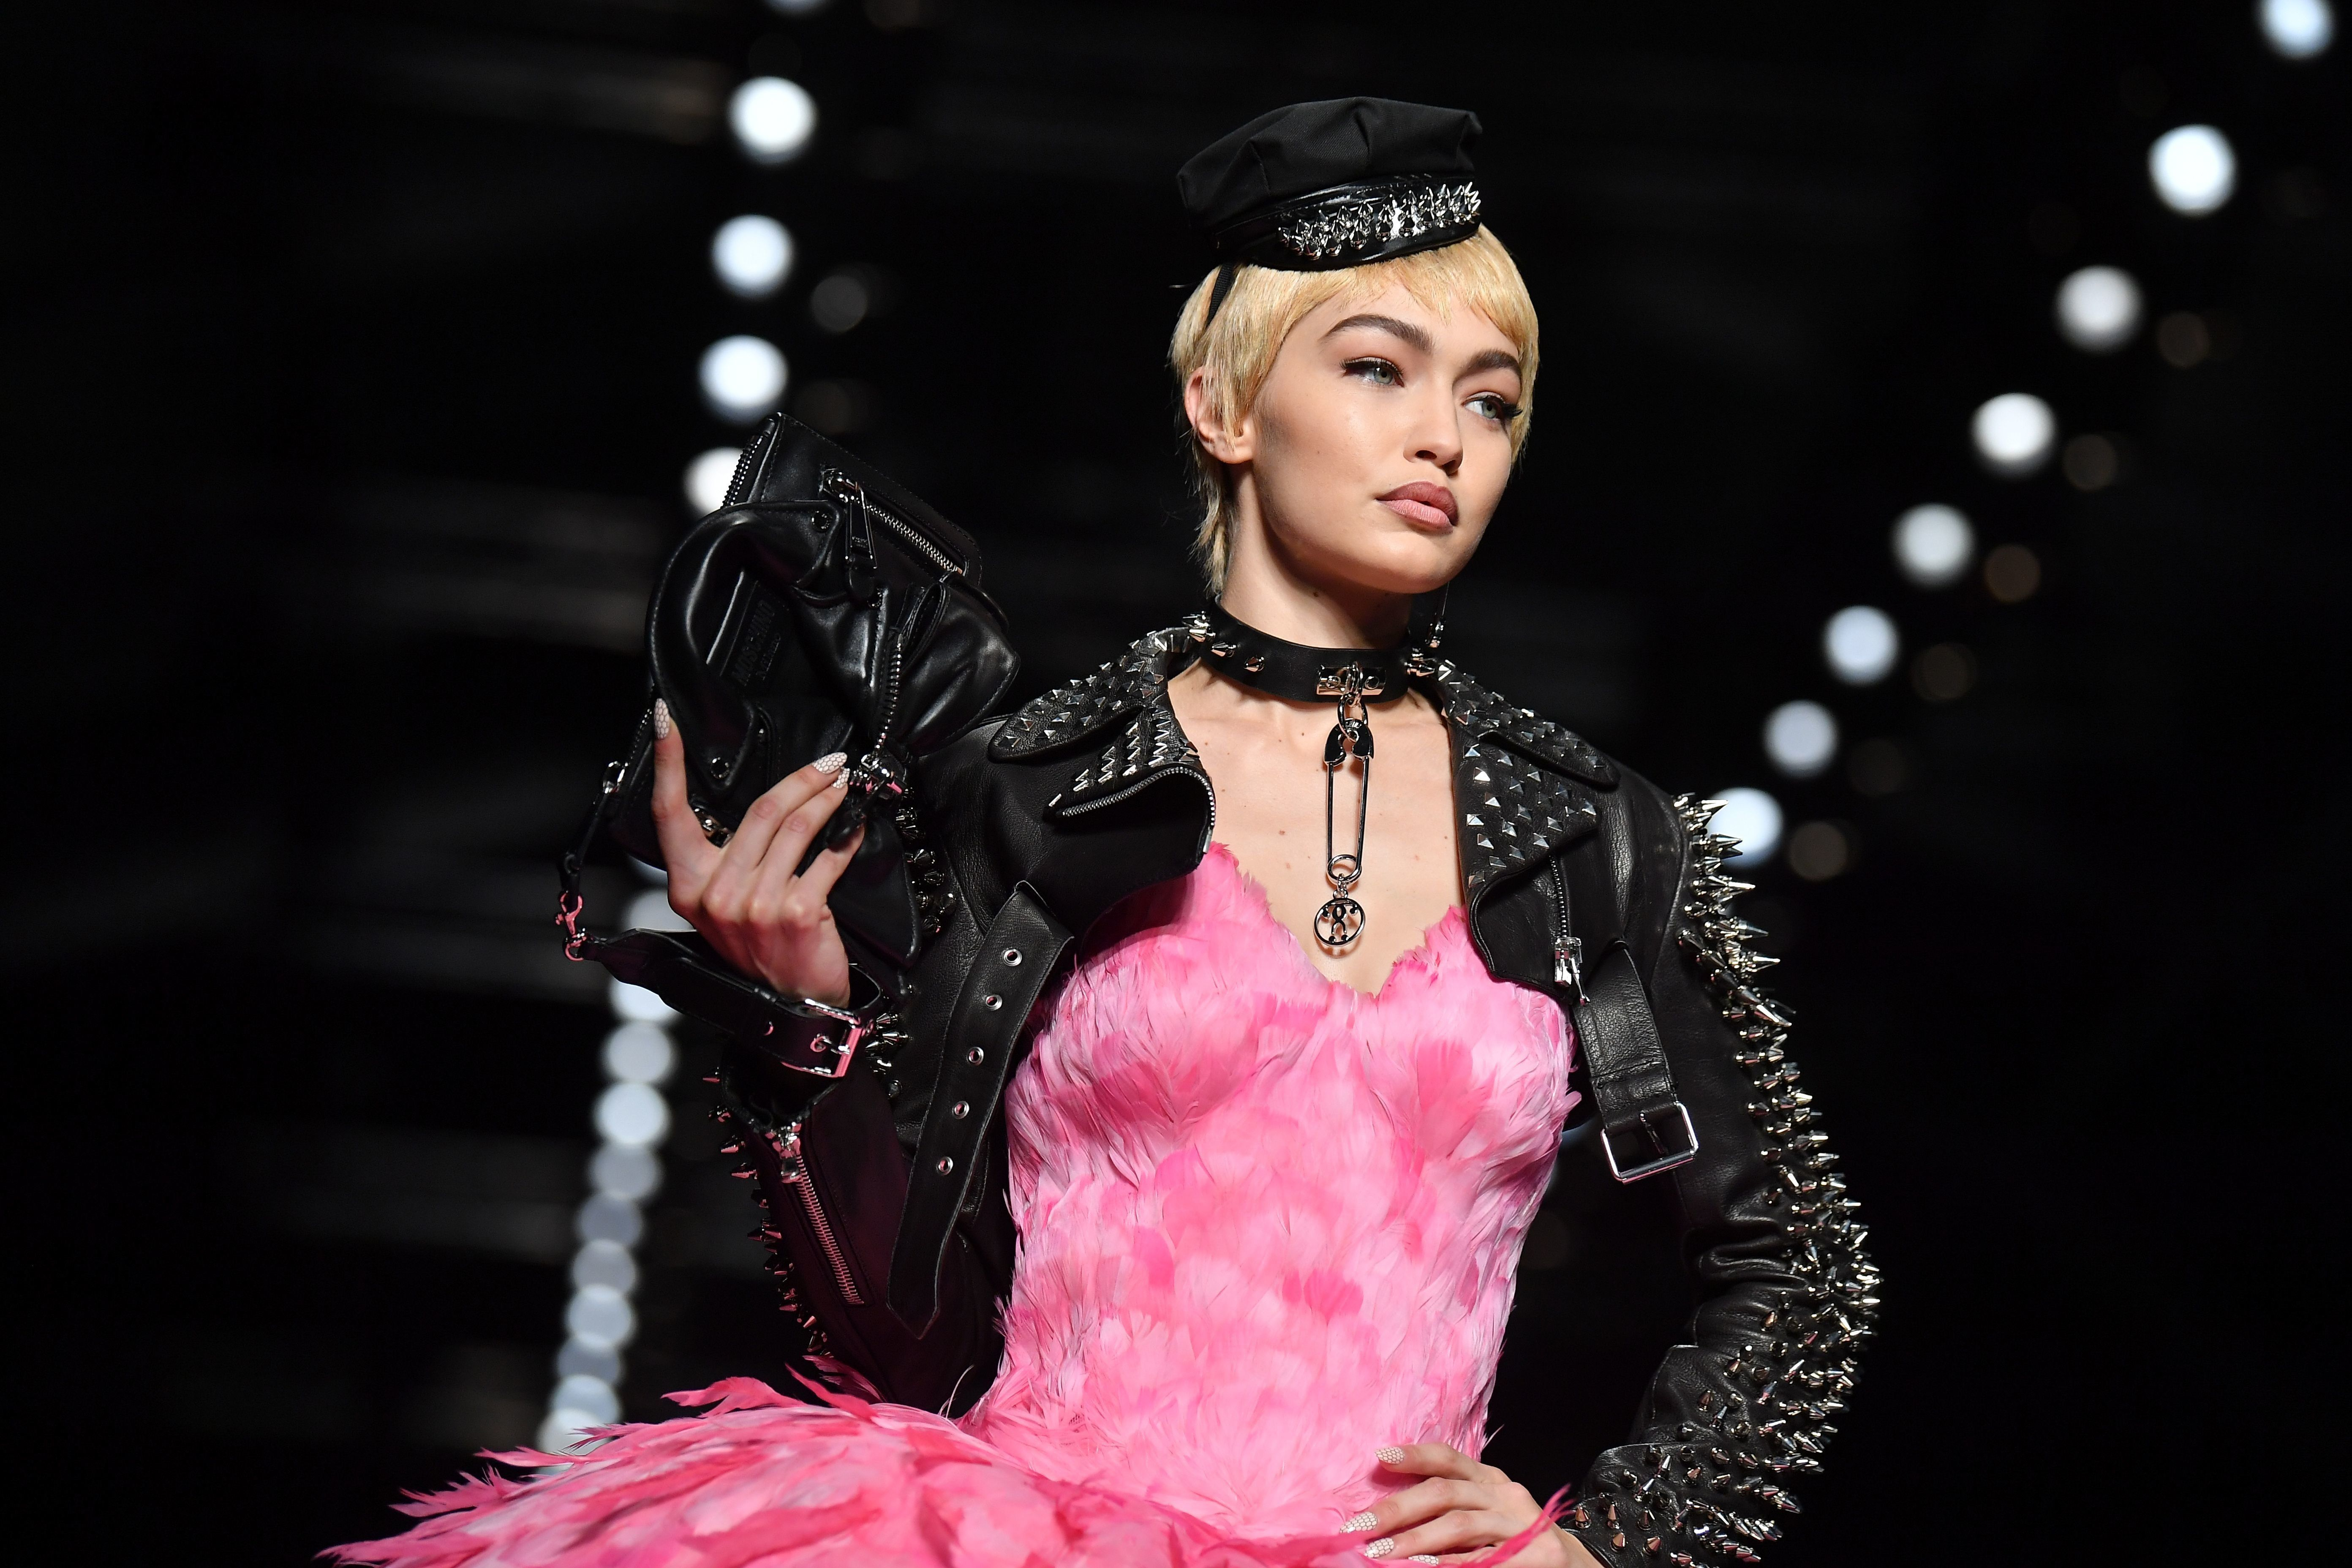 Model Gigi Hadid presents a creation for fashion house Moschino during the Women's Spring/Summer 2018 fashion shows in Milan, on September 21, 2017.  / AFP PHOTO / Marco BERTORELLO        (Photo credit should read MARCO BERTORELLO/AFP/Getty Images)